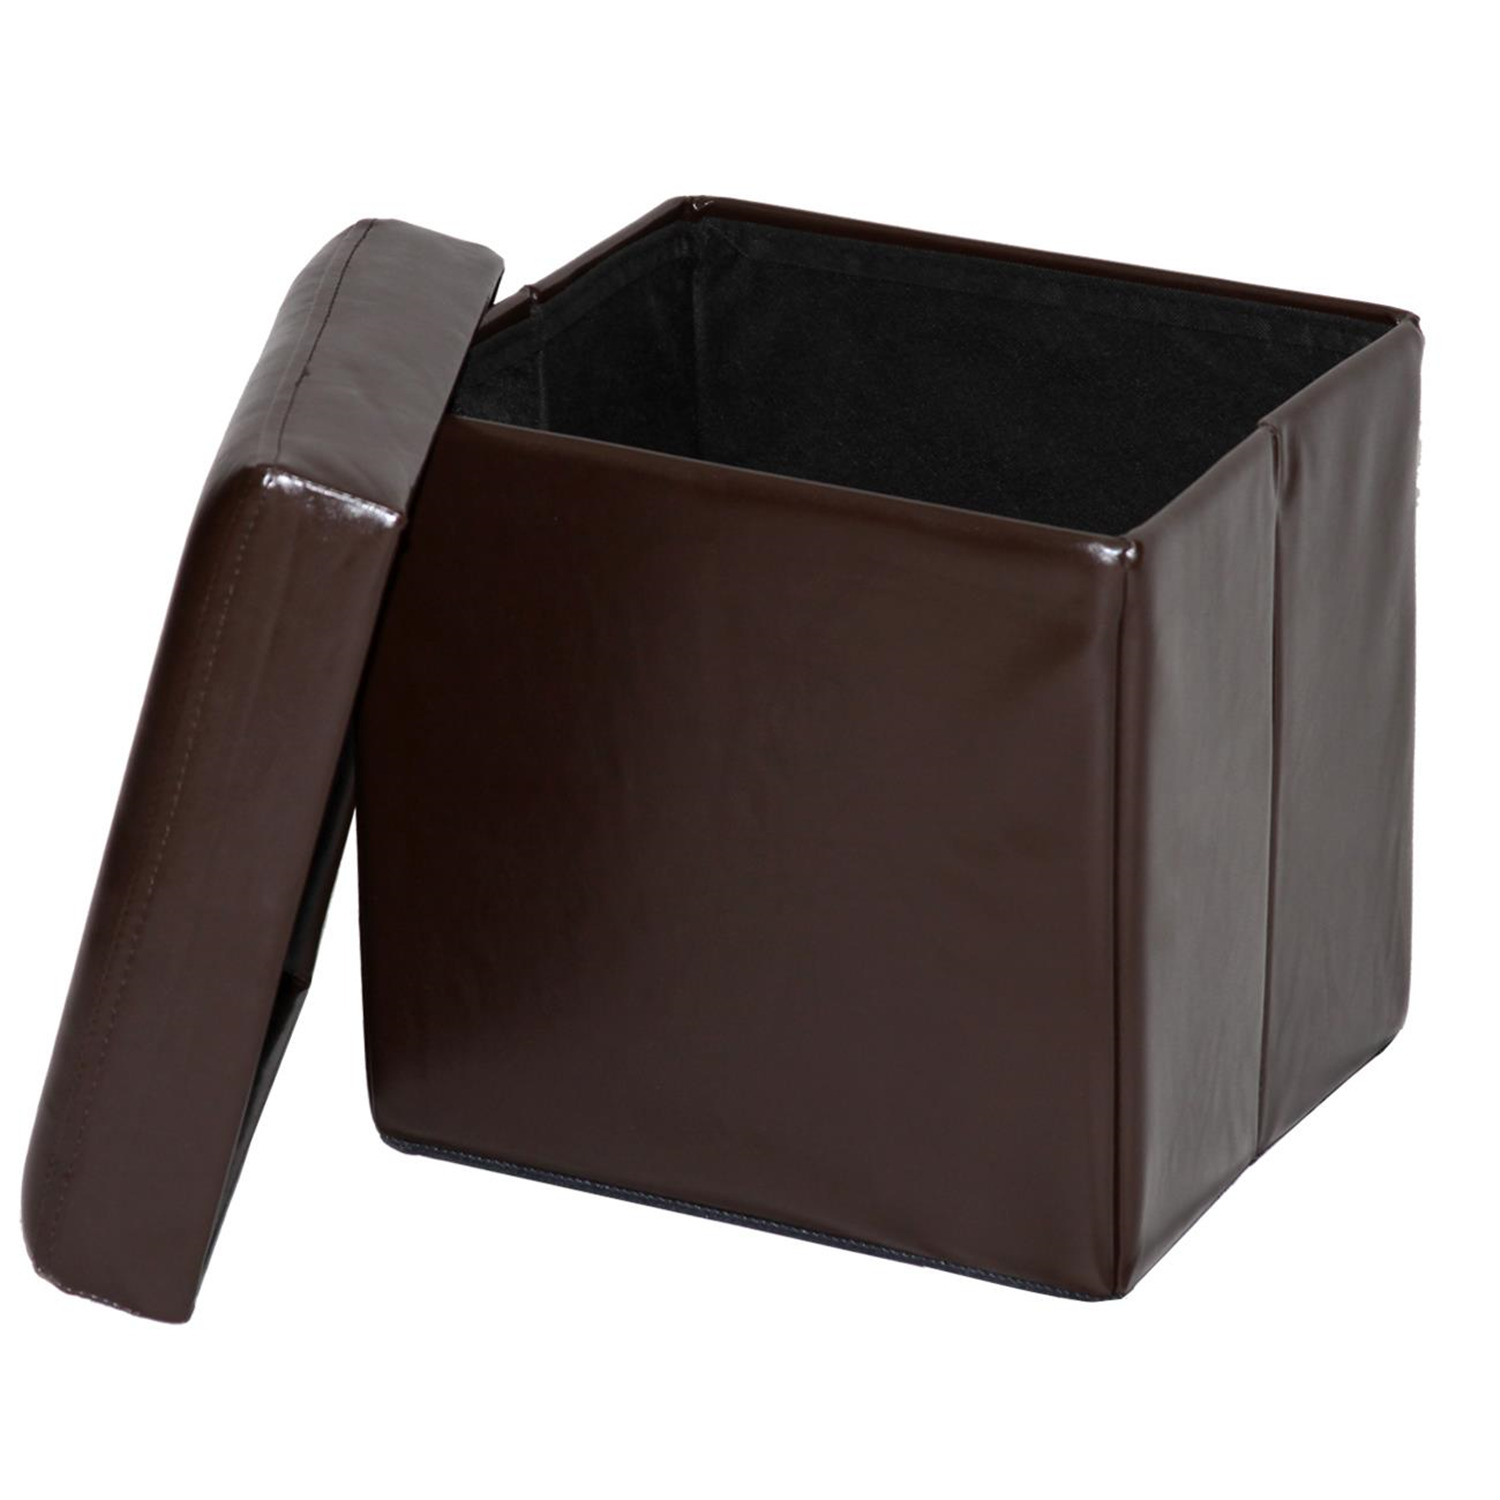 Home source folding storage ottoman by oj commerce for Home source